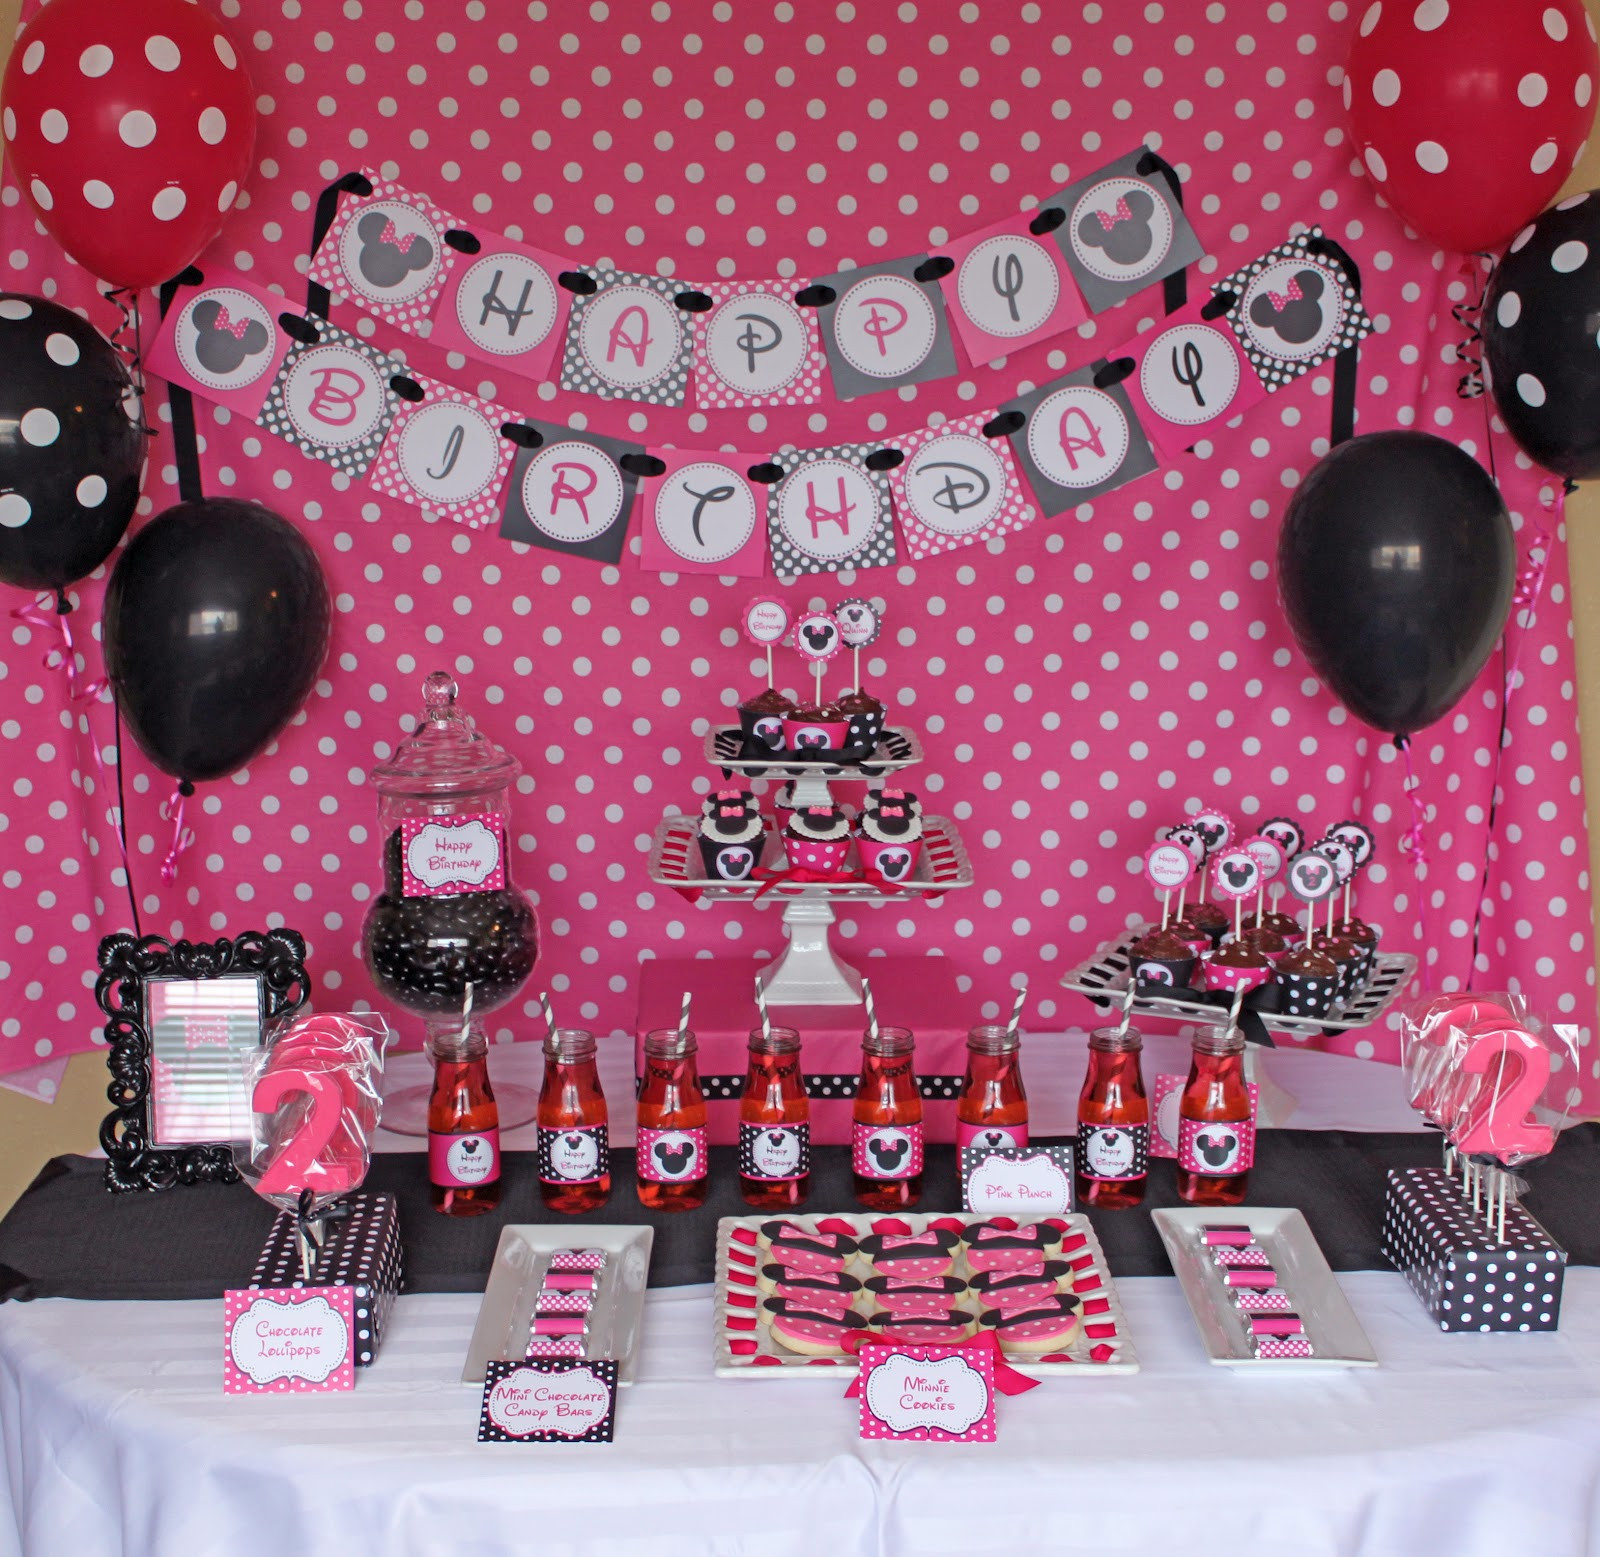 Best ideas about Minnie Mouse Birthday Decor . Save or Pin Minnie Mouse Birthday Party Now.